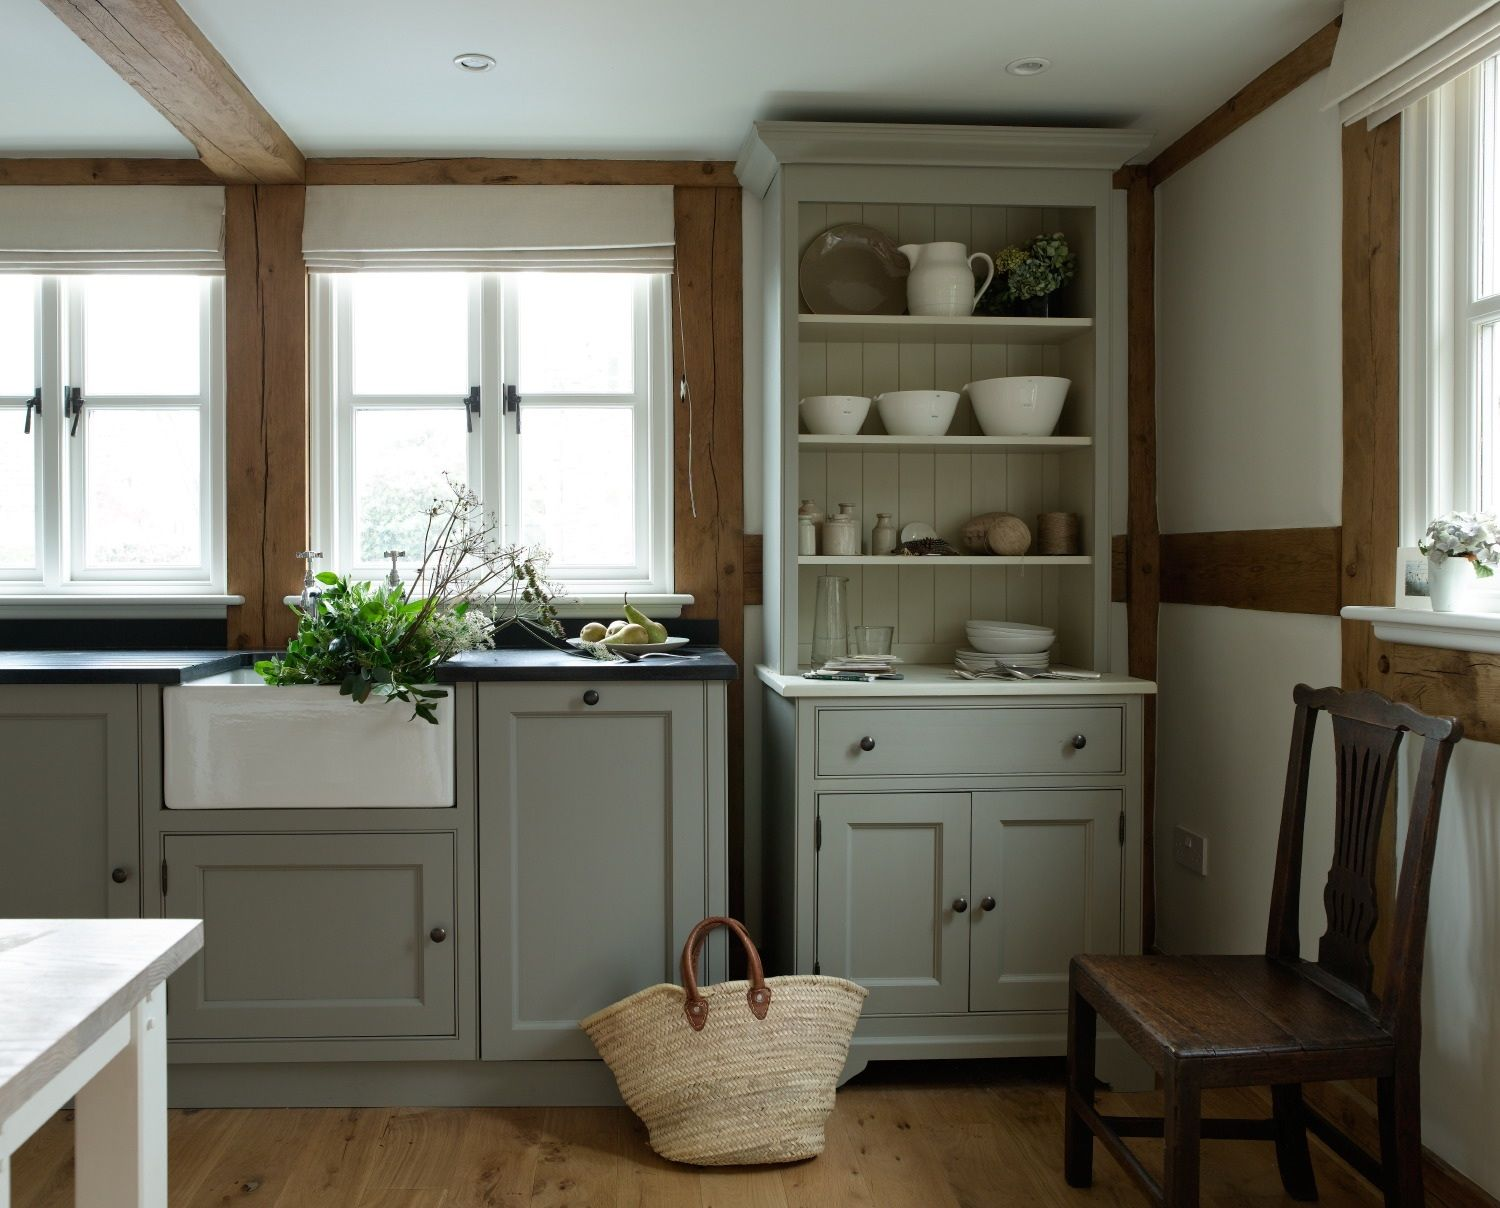 Looking at images of grey cabinets most